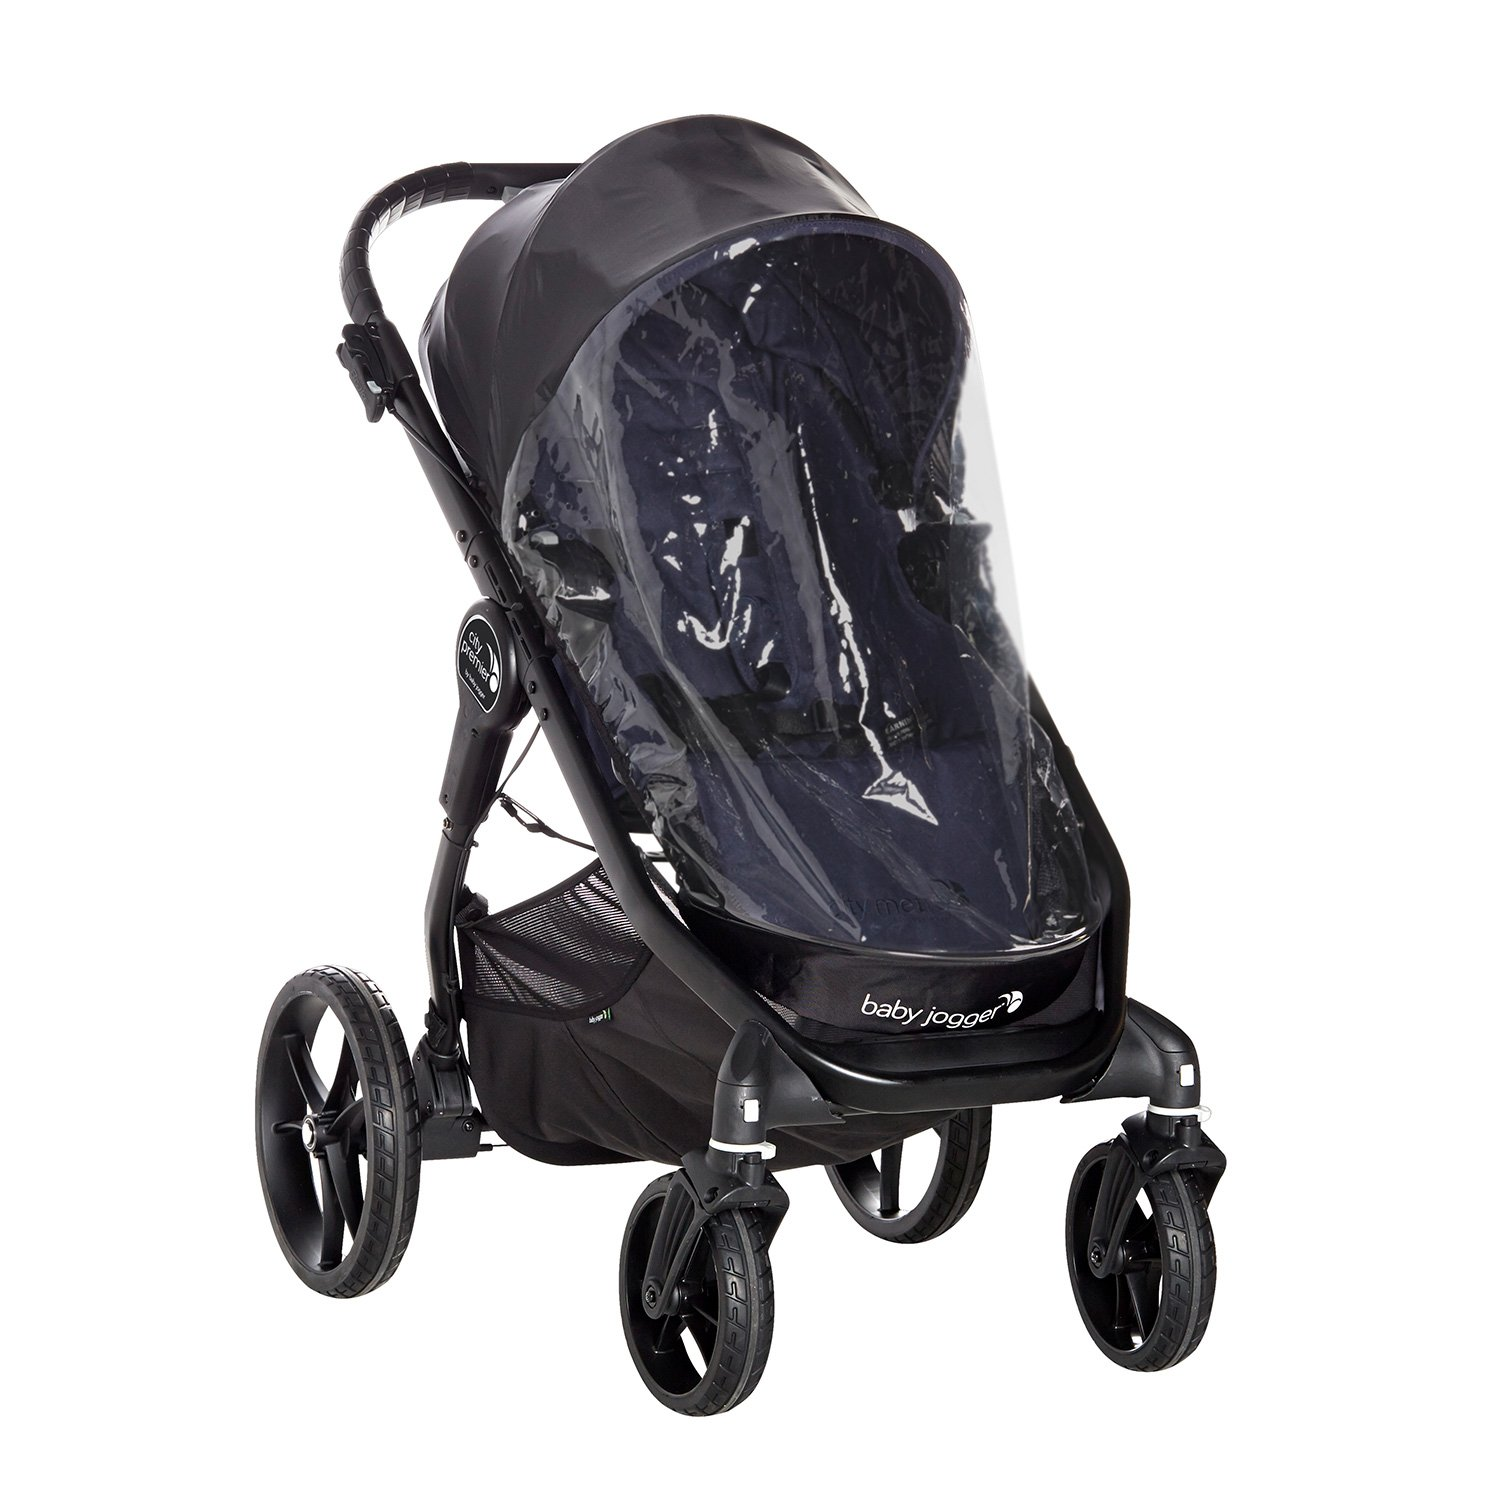 Baby Jogger bj0139145100 Cubierta impermeable para asiento Cochecito City Premier BJ91451